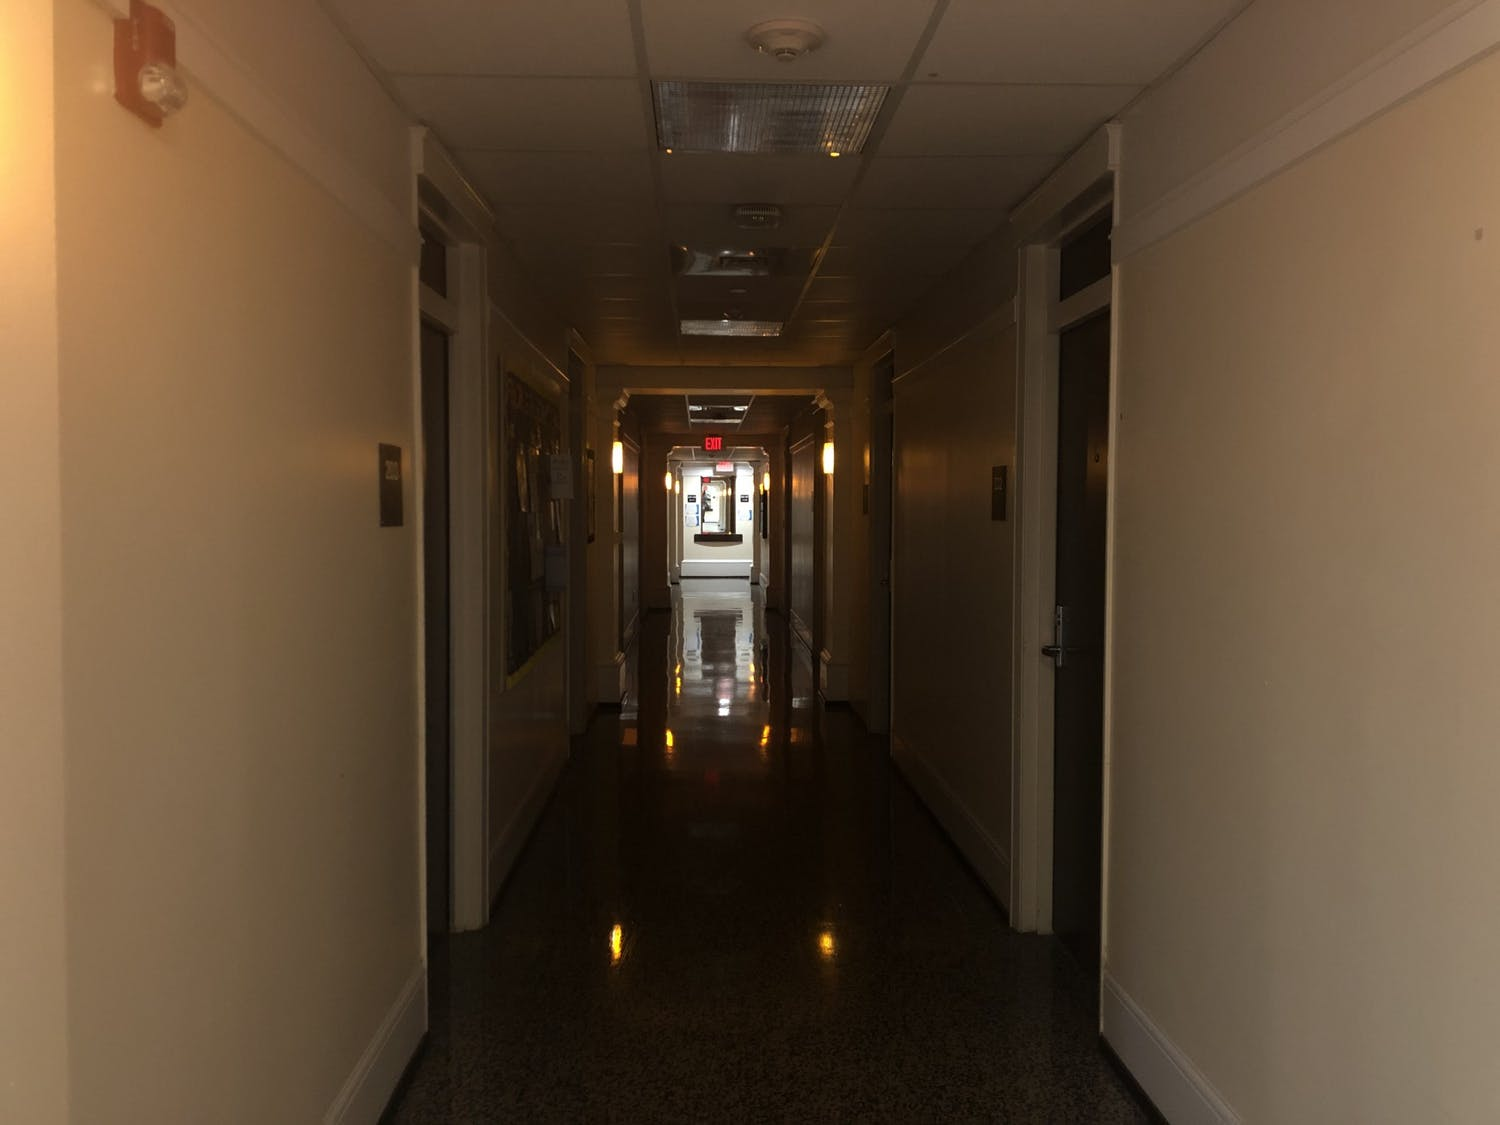 A Carolina Housing Residence Hall on Saturday, May 16, 2020 after nearly all of the residents had moved out due to the COVID-19 pandemic.